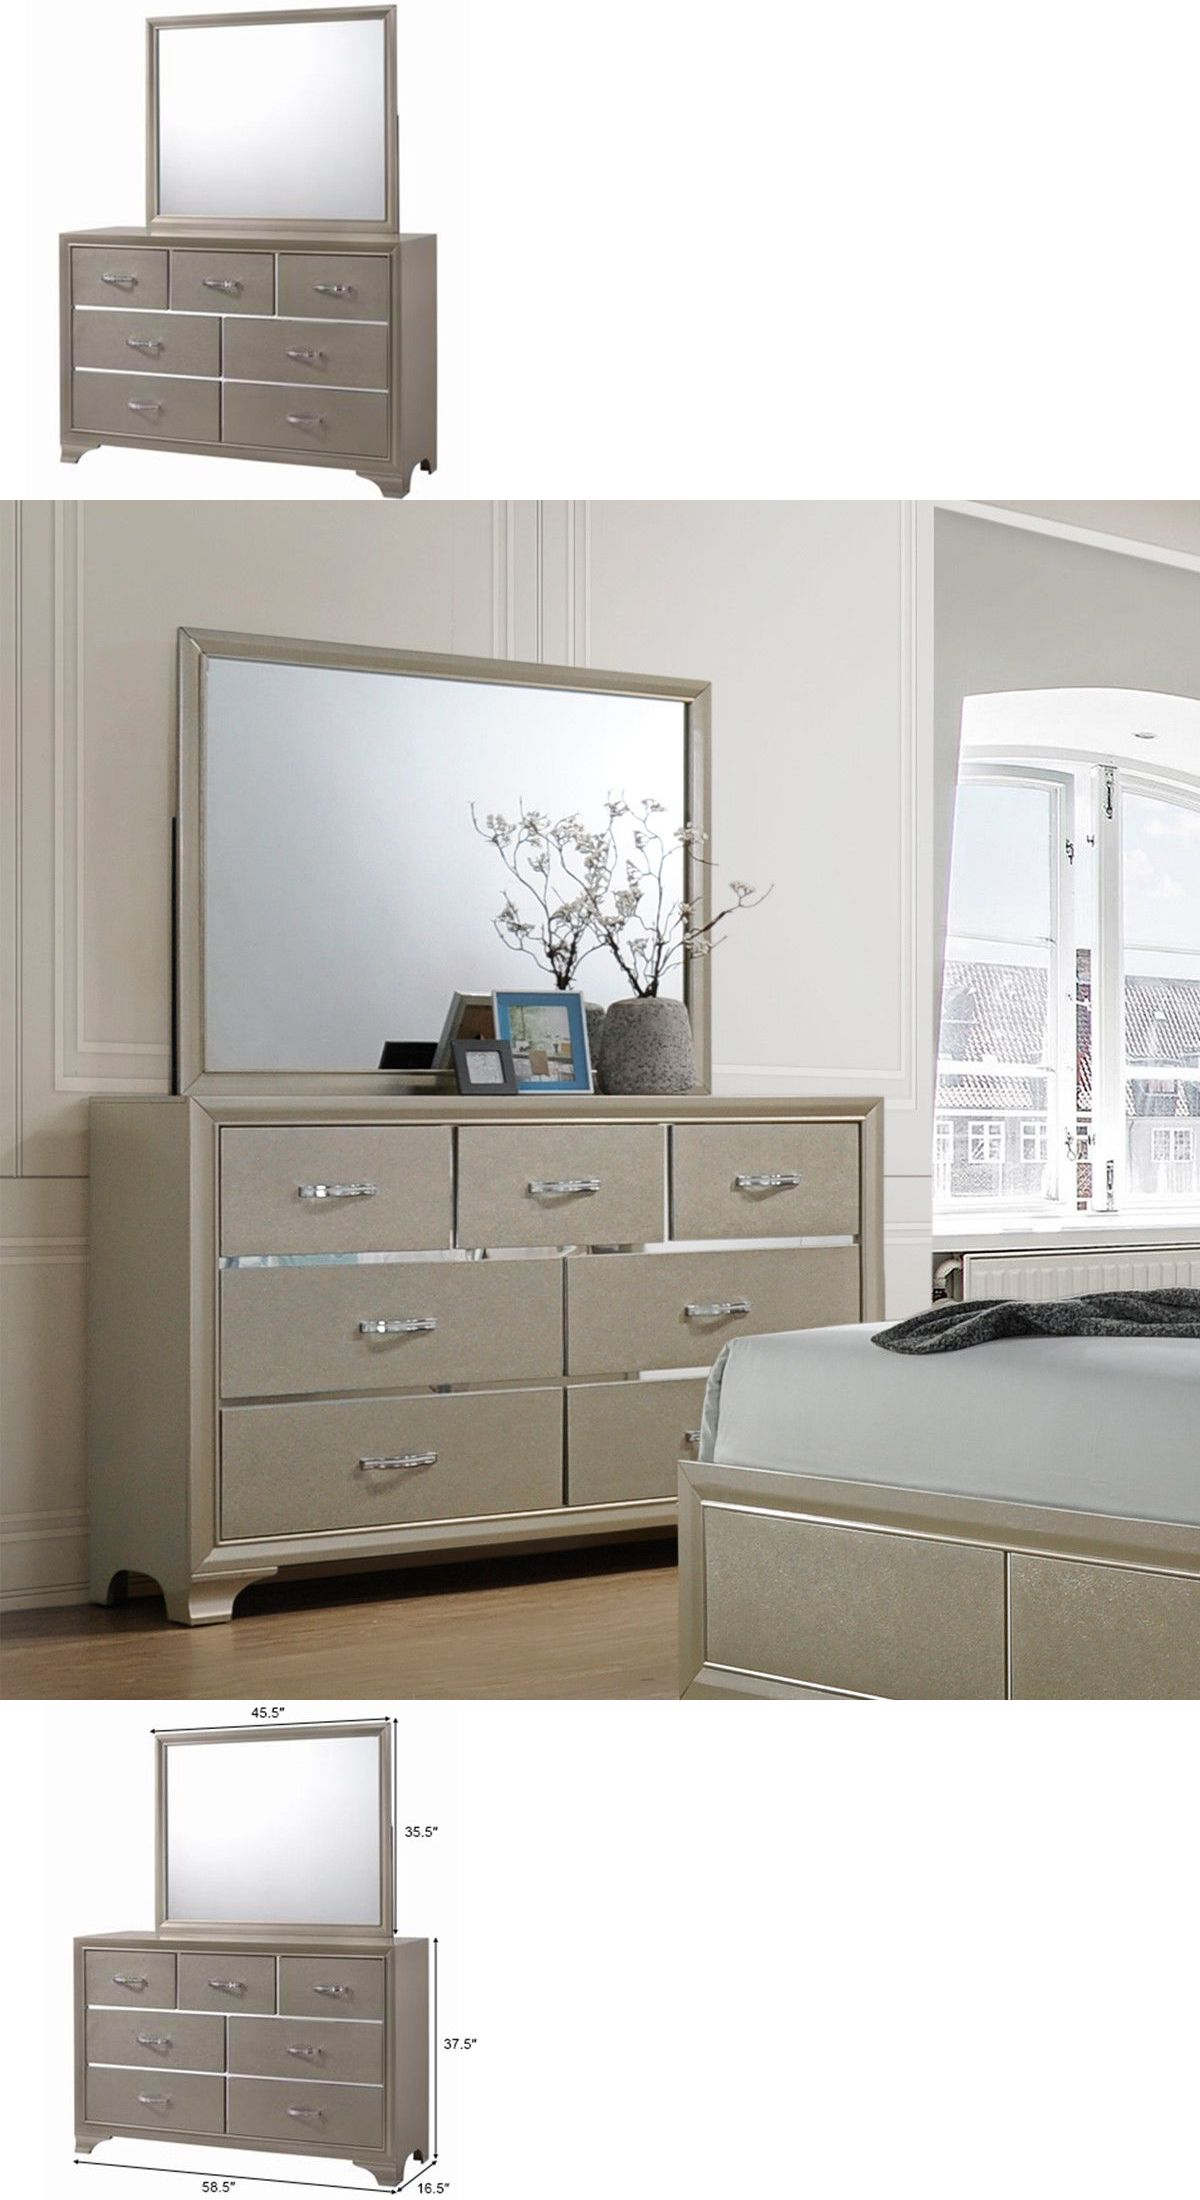 Dressers And Chests Of Drawers 114397 7 Drawers Dresser Chest Andmirror Set Storage Cabinet Luxury Furnitur Cabinets For Sale 7 Drawer Dresser Storage Cabinet